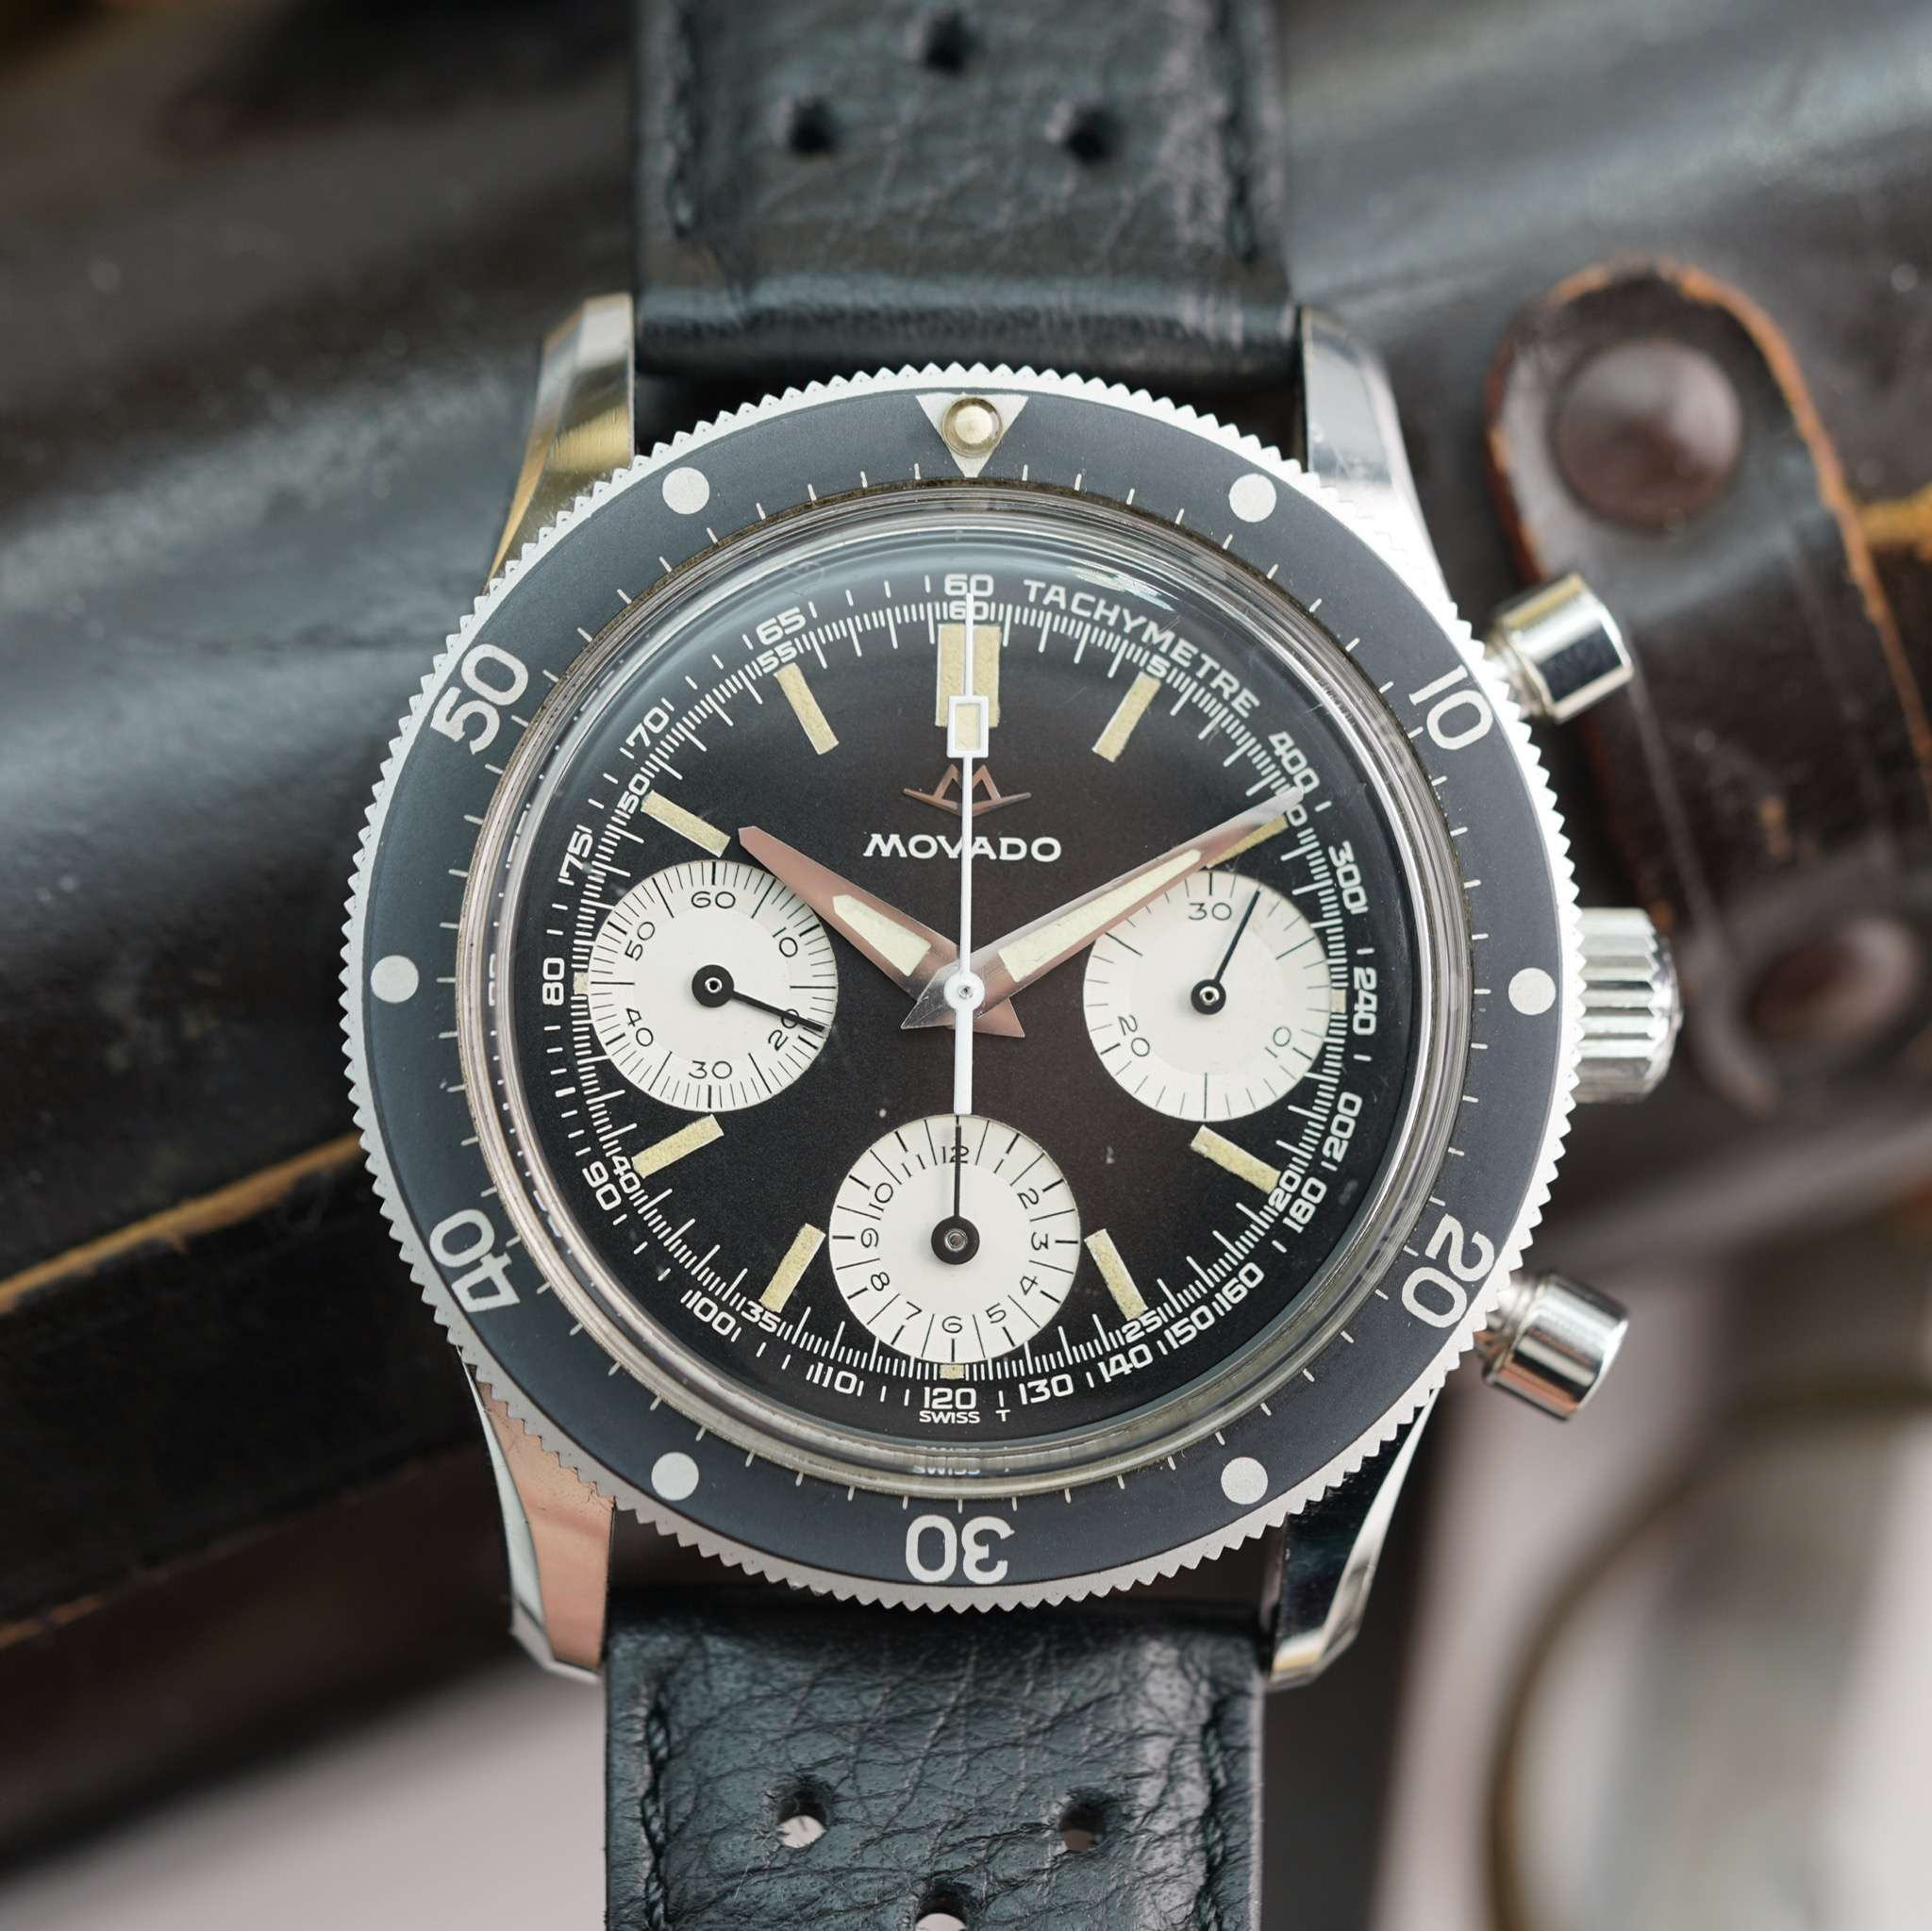 Vintage Movado Chronograph Super Sub Sea